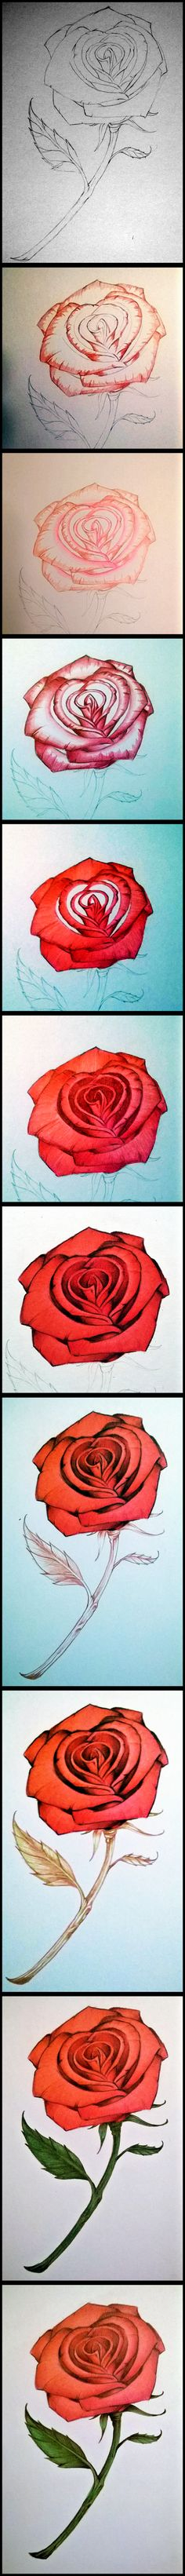 Learn how to draw and color a lovely Red Rose using Colored Pencils by Artist Derrick Rathgeber. http://derricktheartist.blogspot.com/2014/03/how-to-draw-rose-with-colored-pencils.html